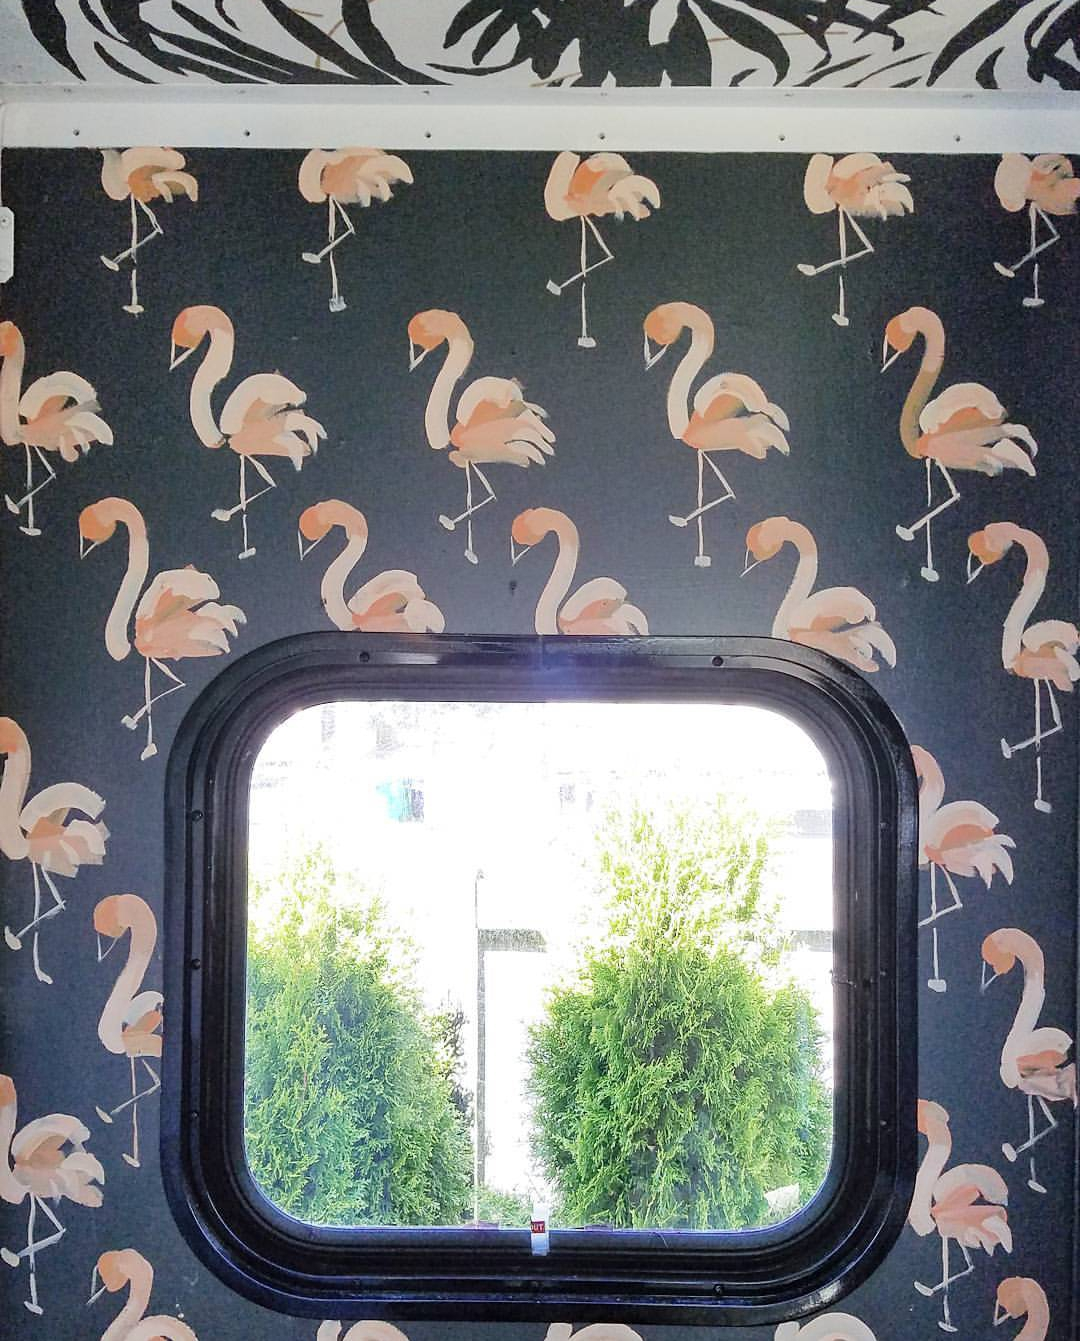 I painted some miniature flamingos in the RV but they only lasted a day before they were painted over.